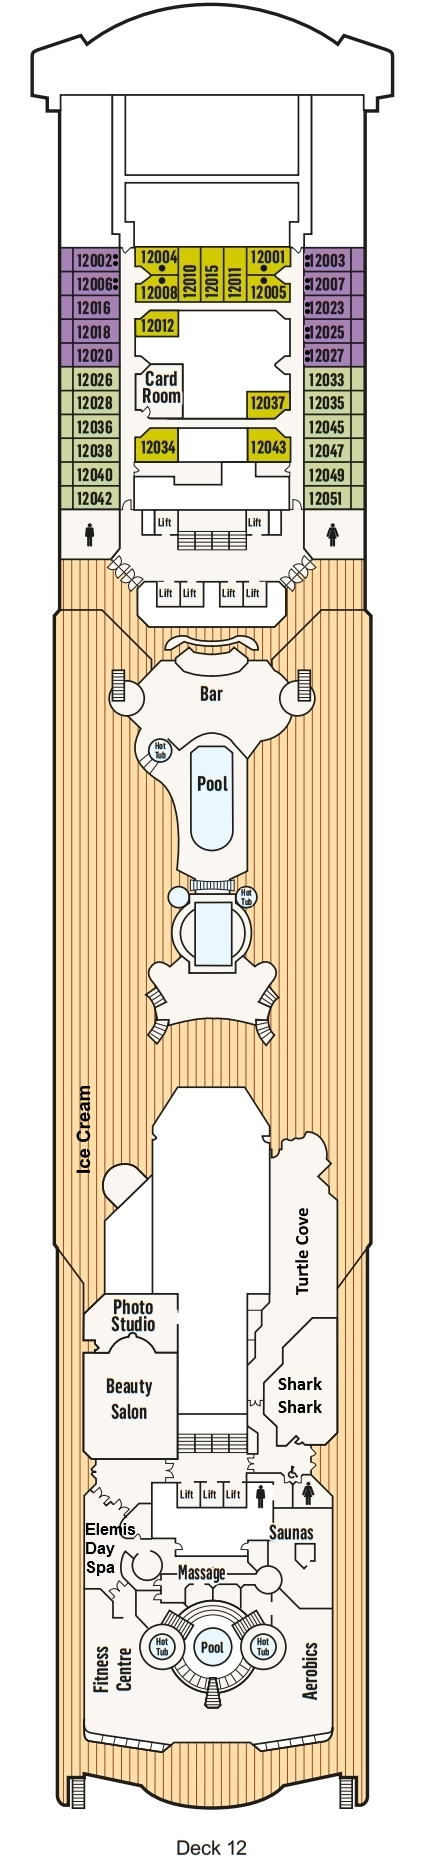 P&O - Pacific Explorer Deck 12 layout